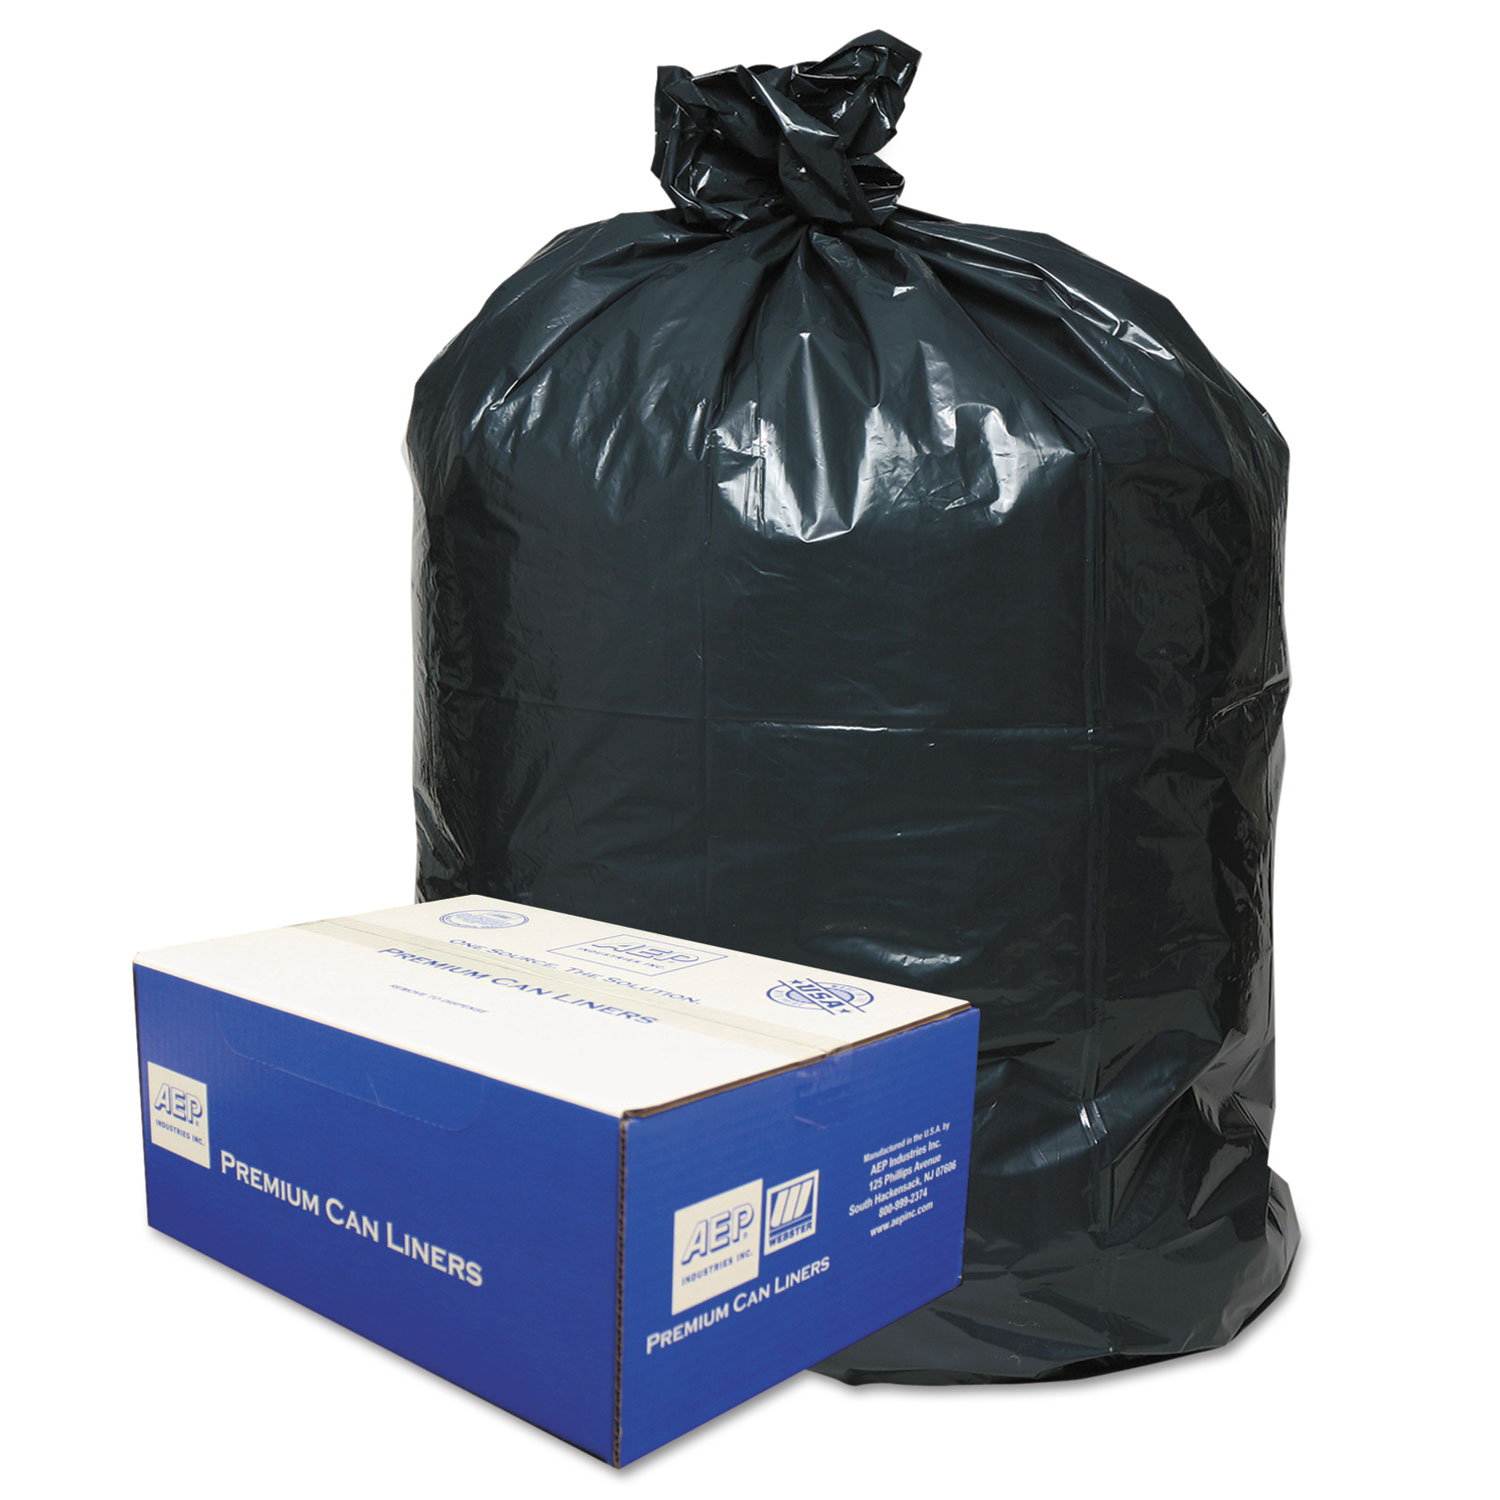 2-Ply Low-Density Can Liners, 56gal, .9 Mil, 43 x 47, Black, 100/Carton